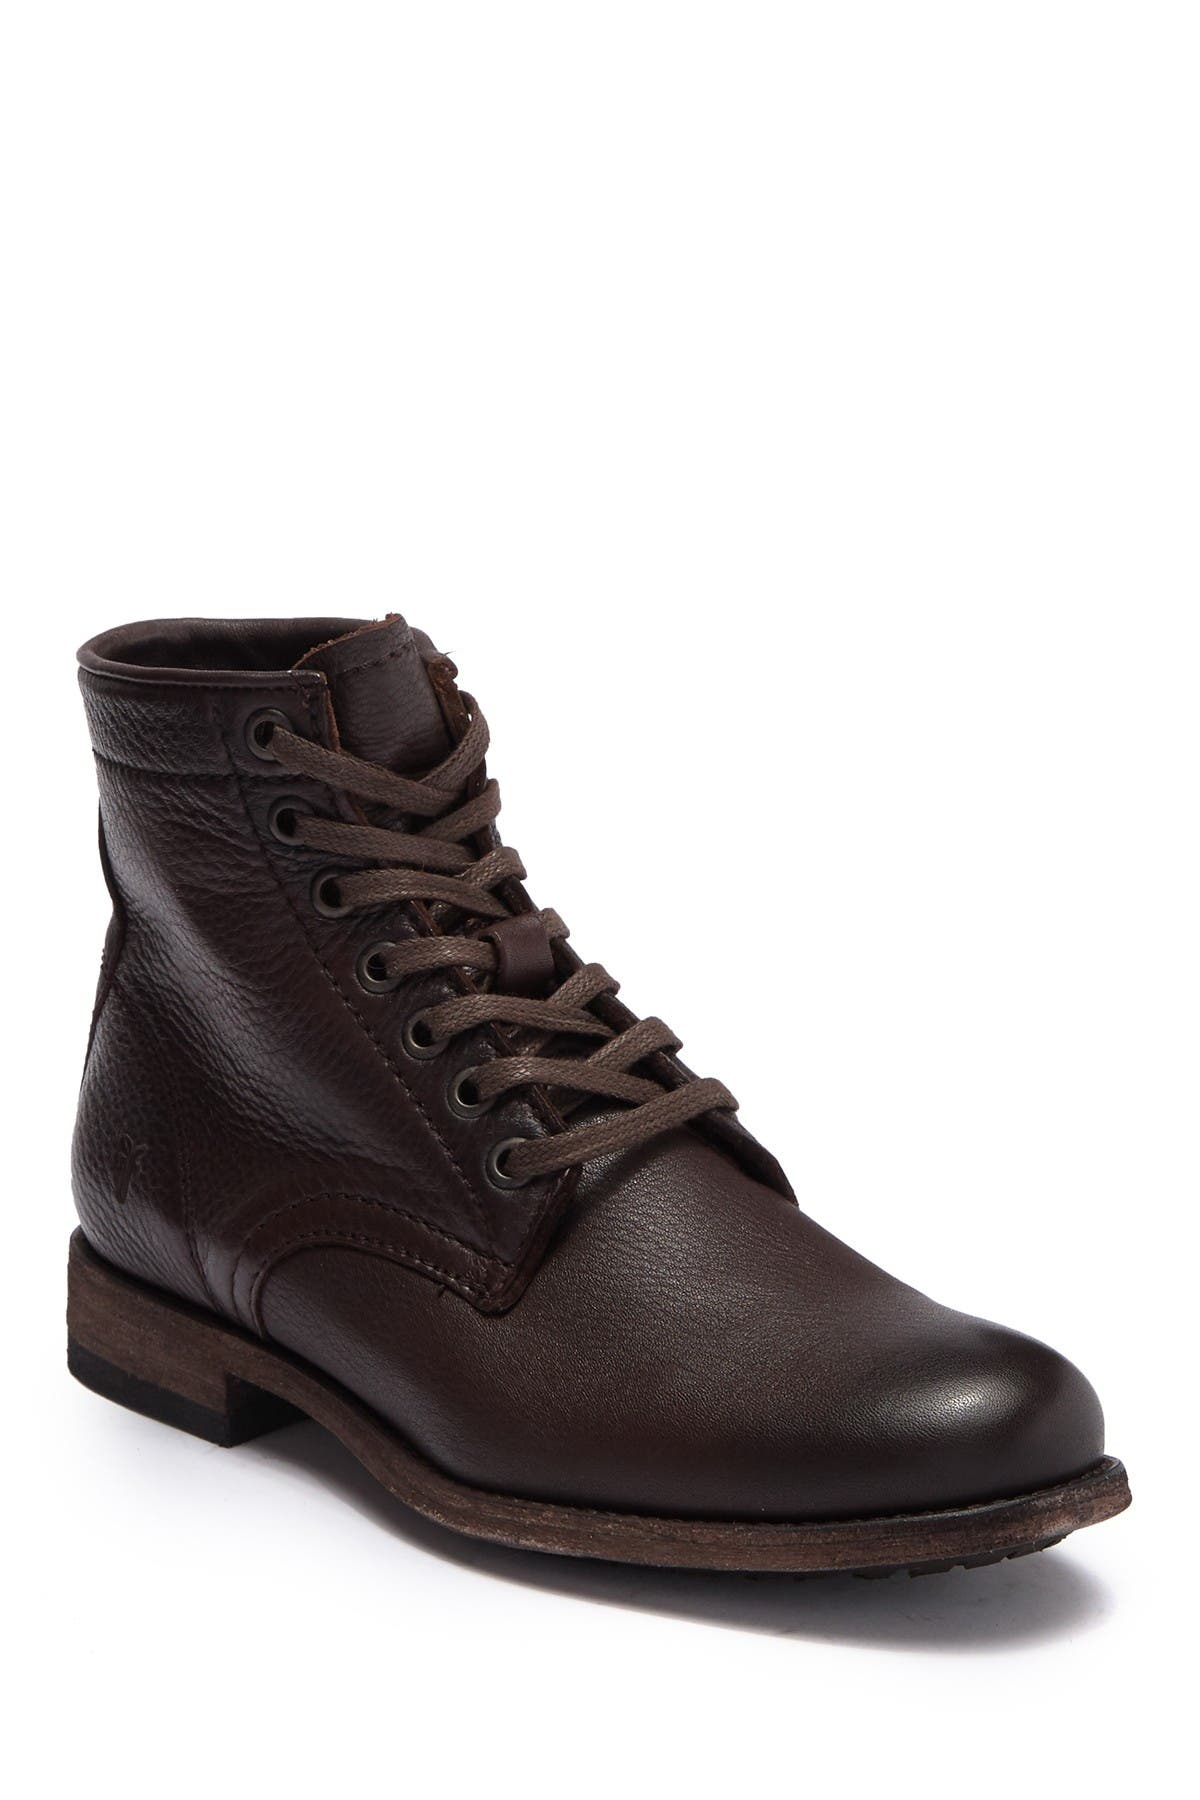 Image of Frye Tyler Leather Lace Up Boot